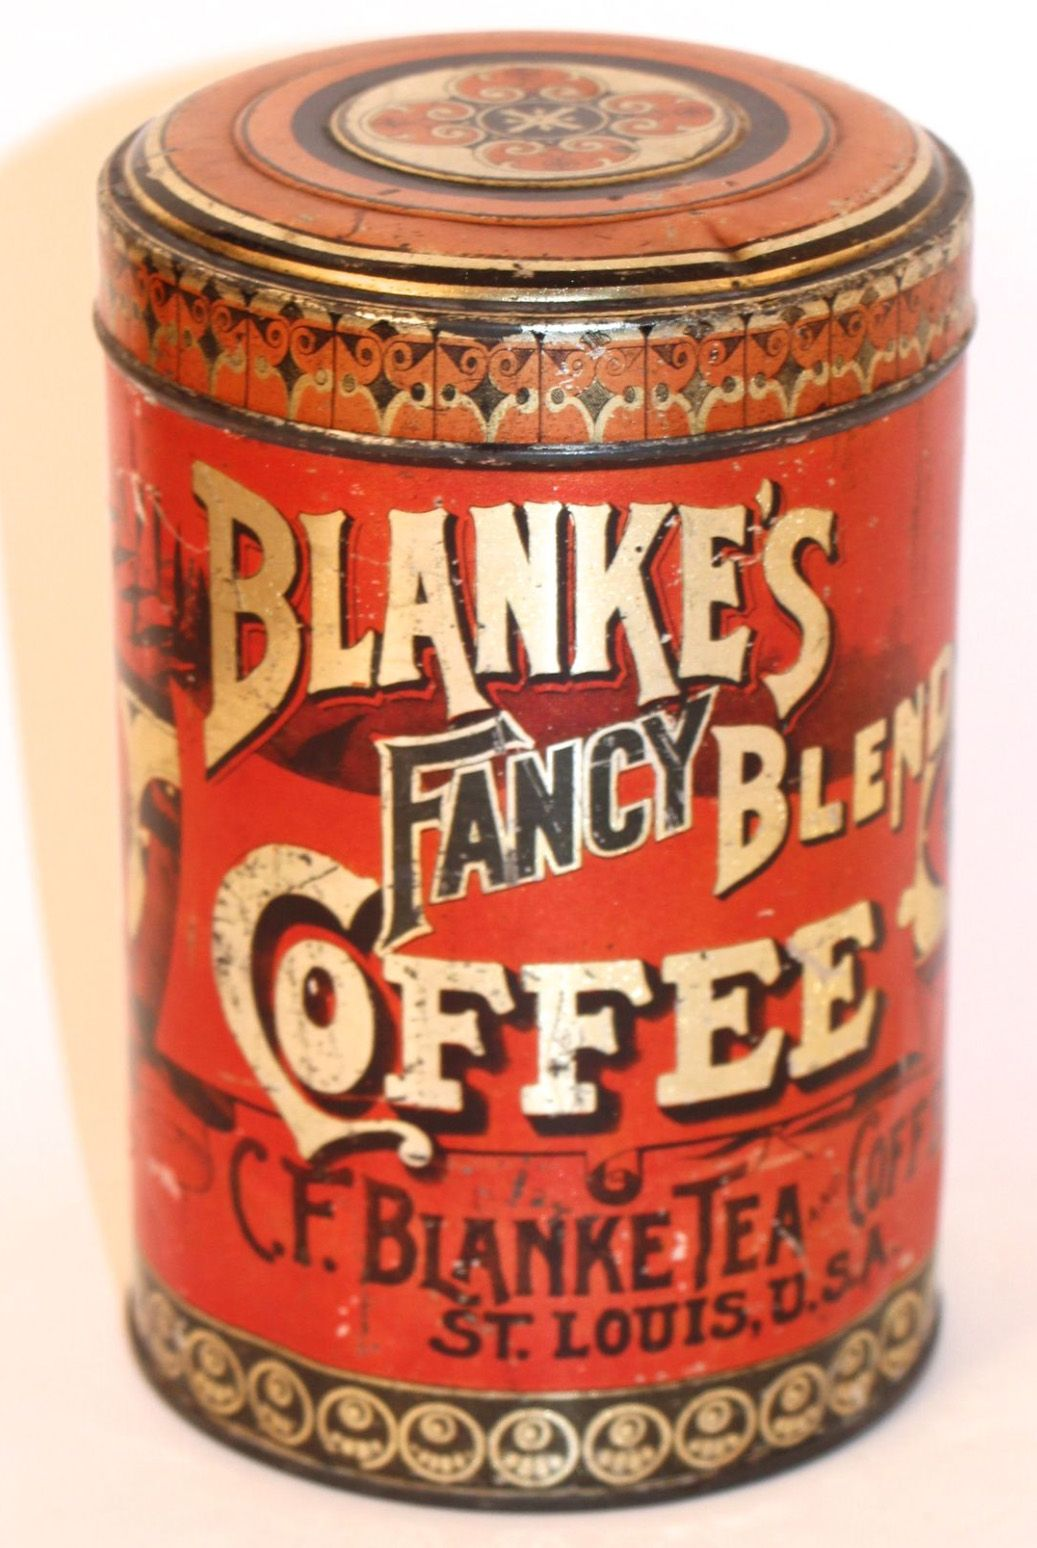 Blankes fancy blend coffee with images coffee tin